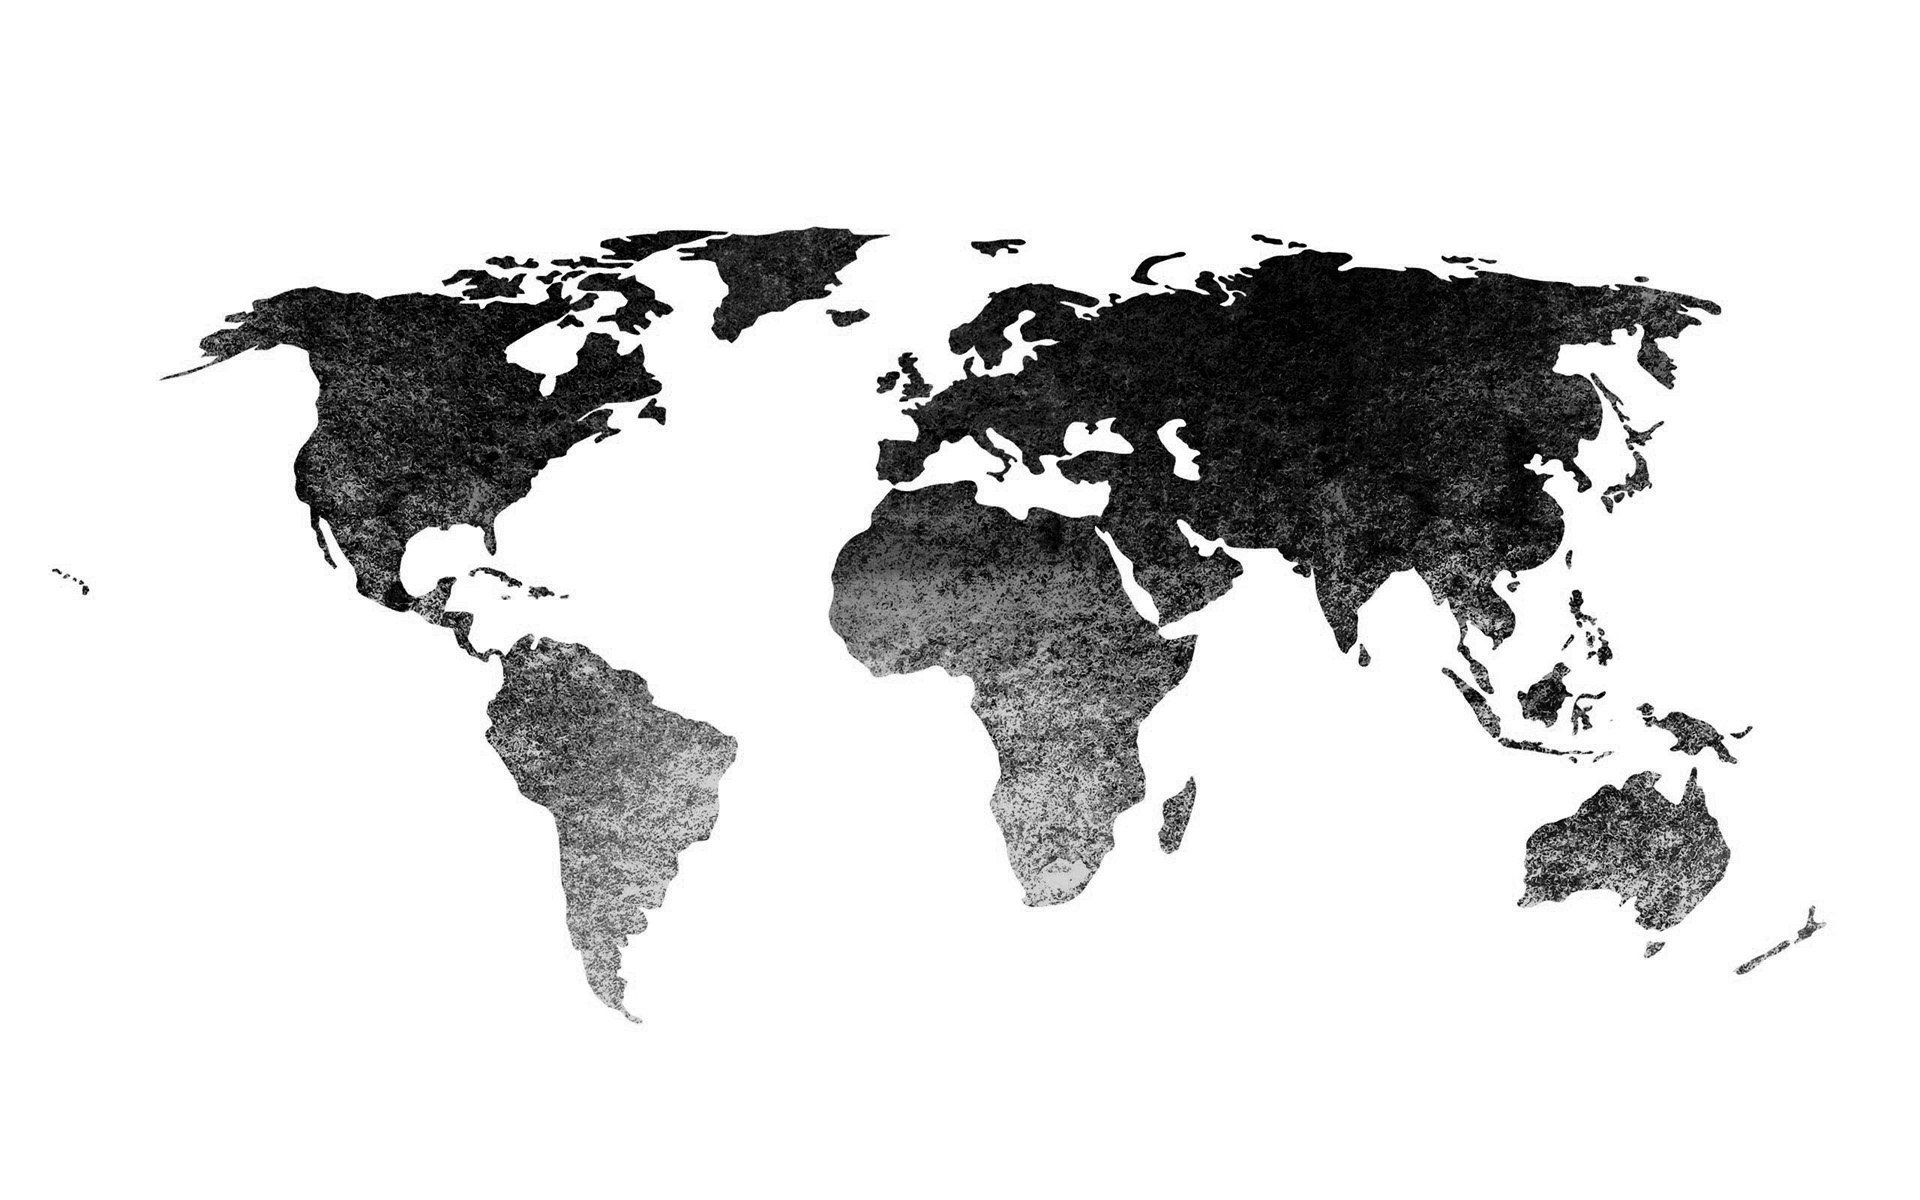 Black World Map Wallpapers High Resolution For Free Wallpaper